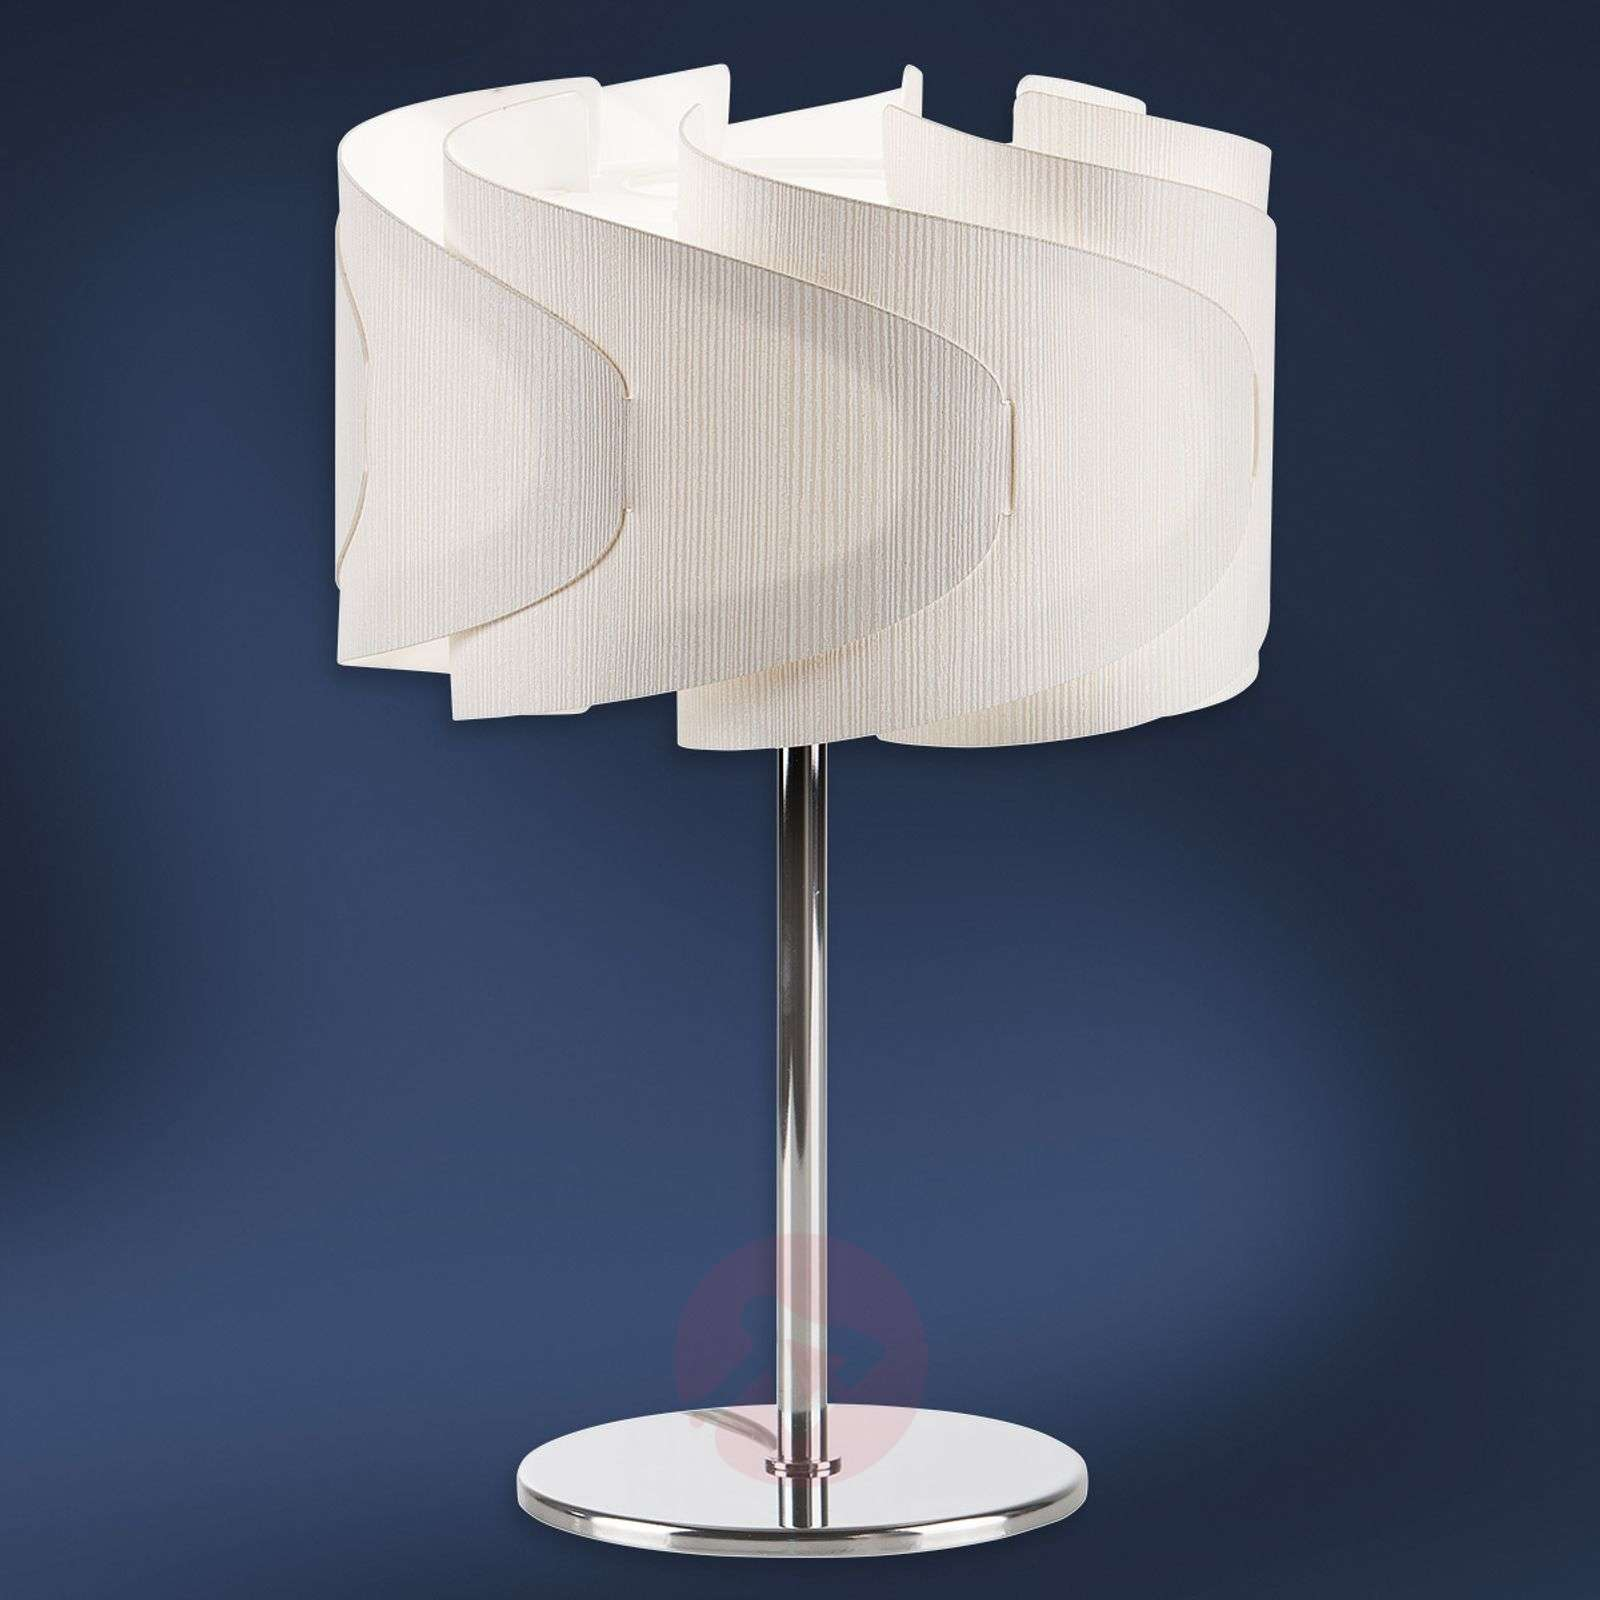 Table lamp Lumetto Ellix in wood finish-1056078-01